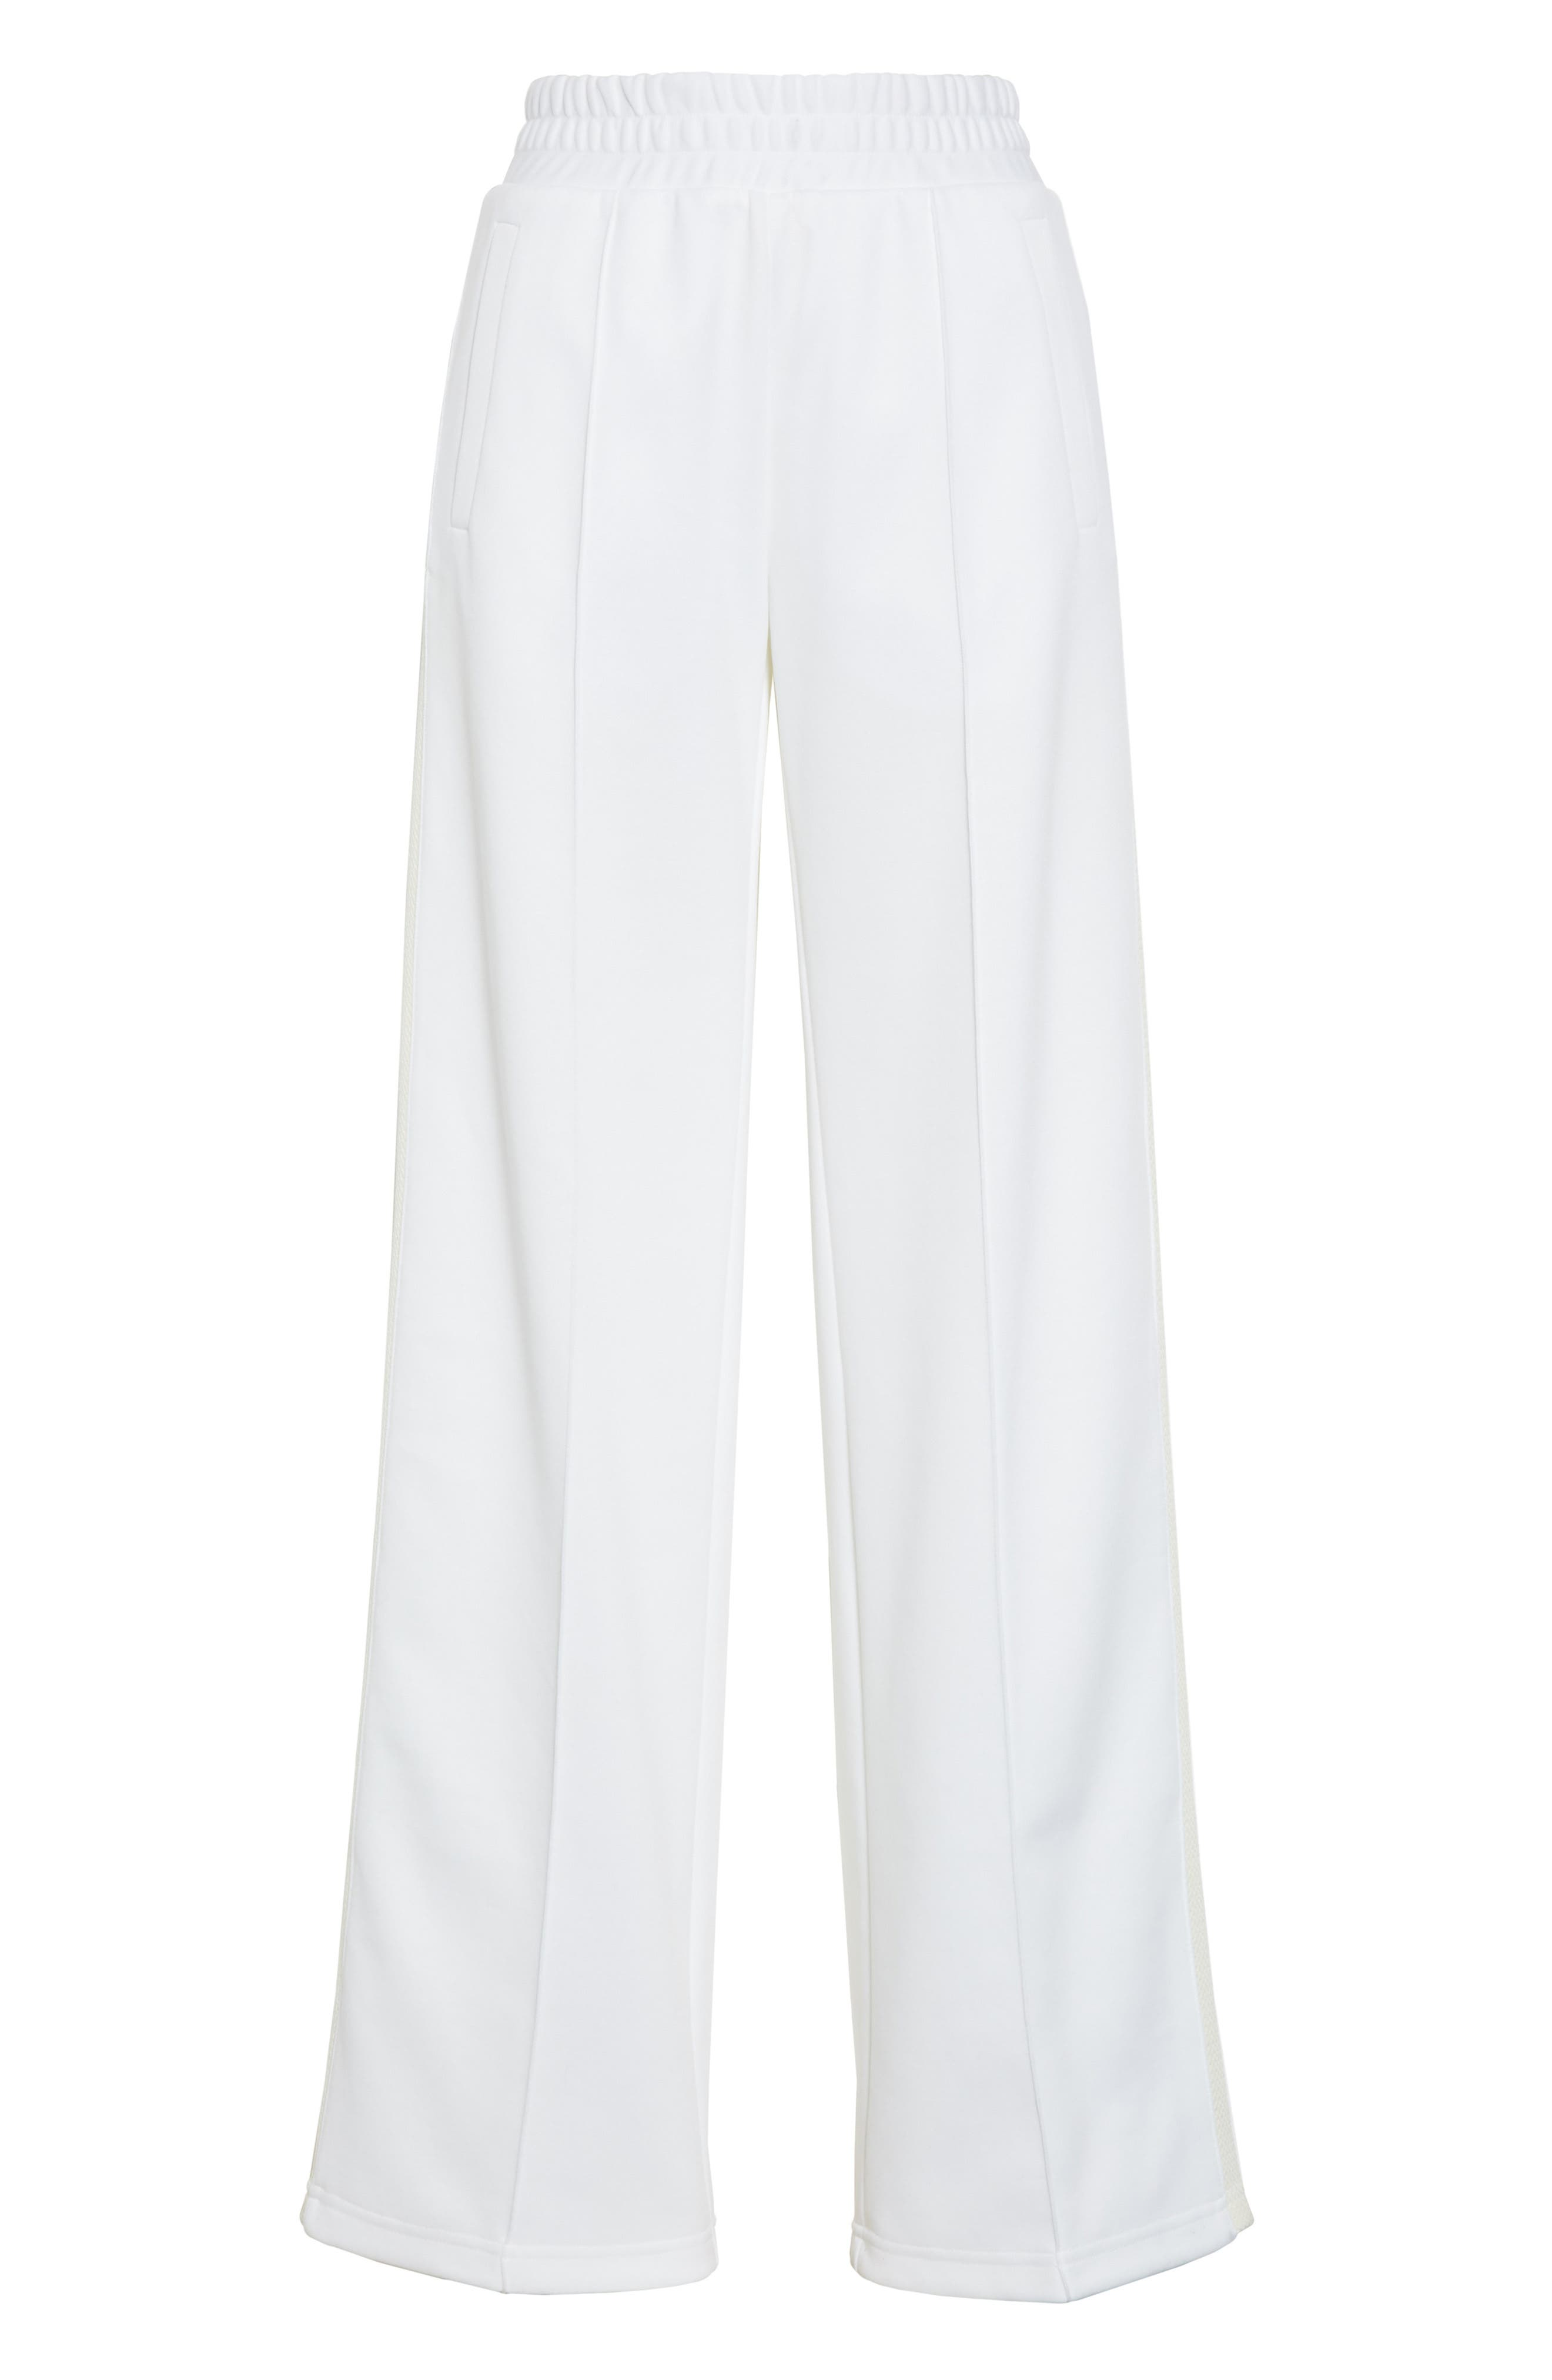 Gym Track Pants,                             Alternate thumbnail 6, color,                             WHITE